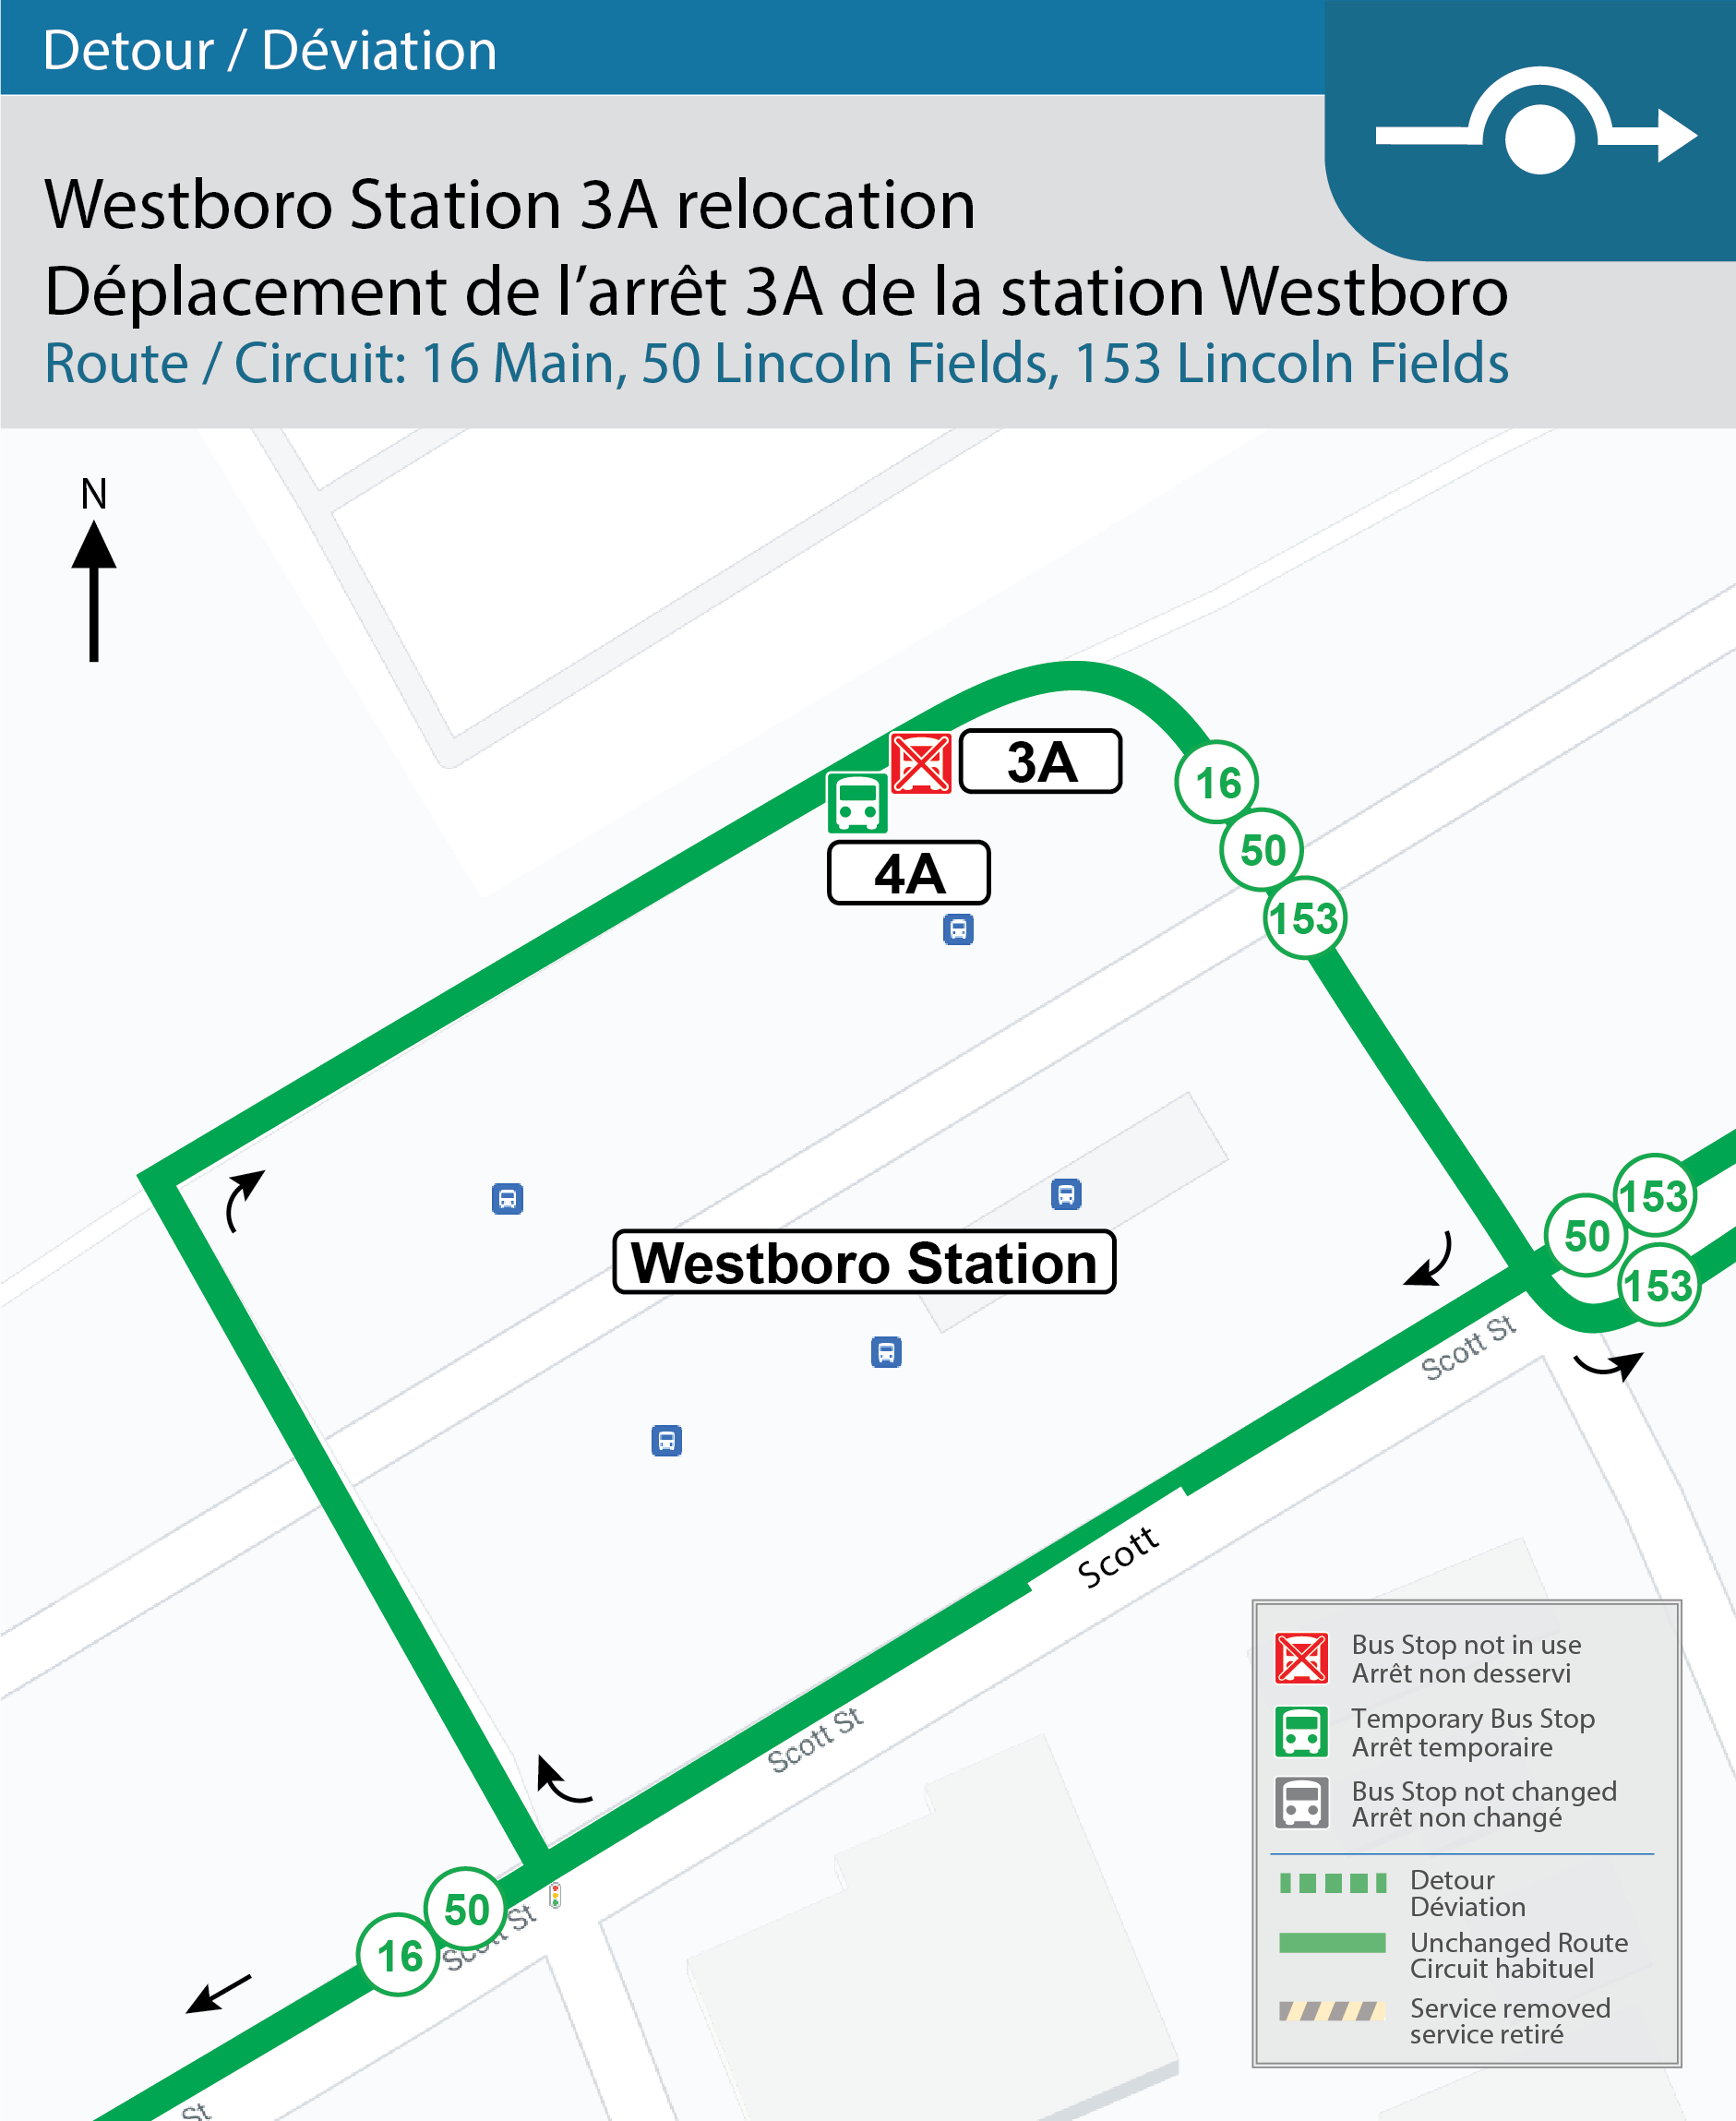 Map for Westboro Station 3A relocation to 4A.